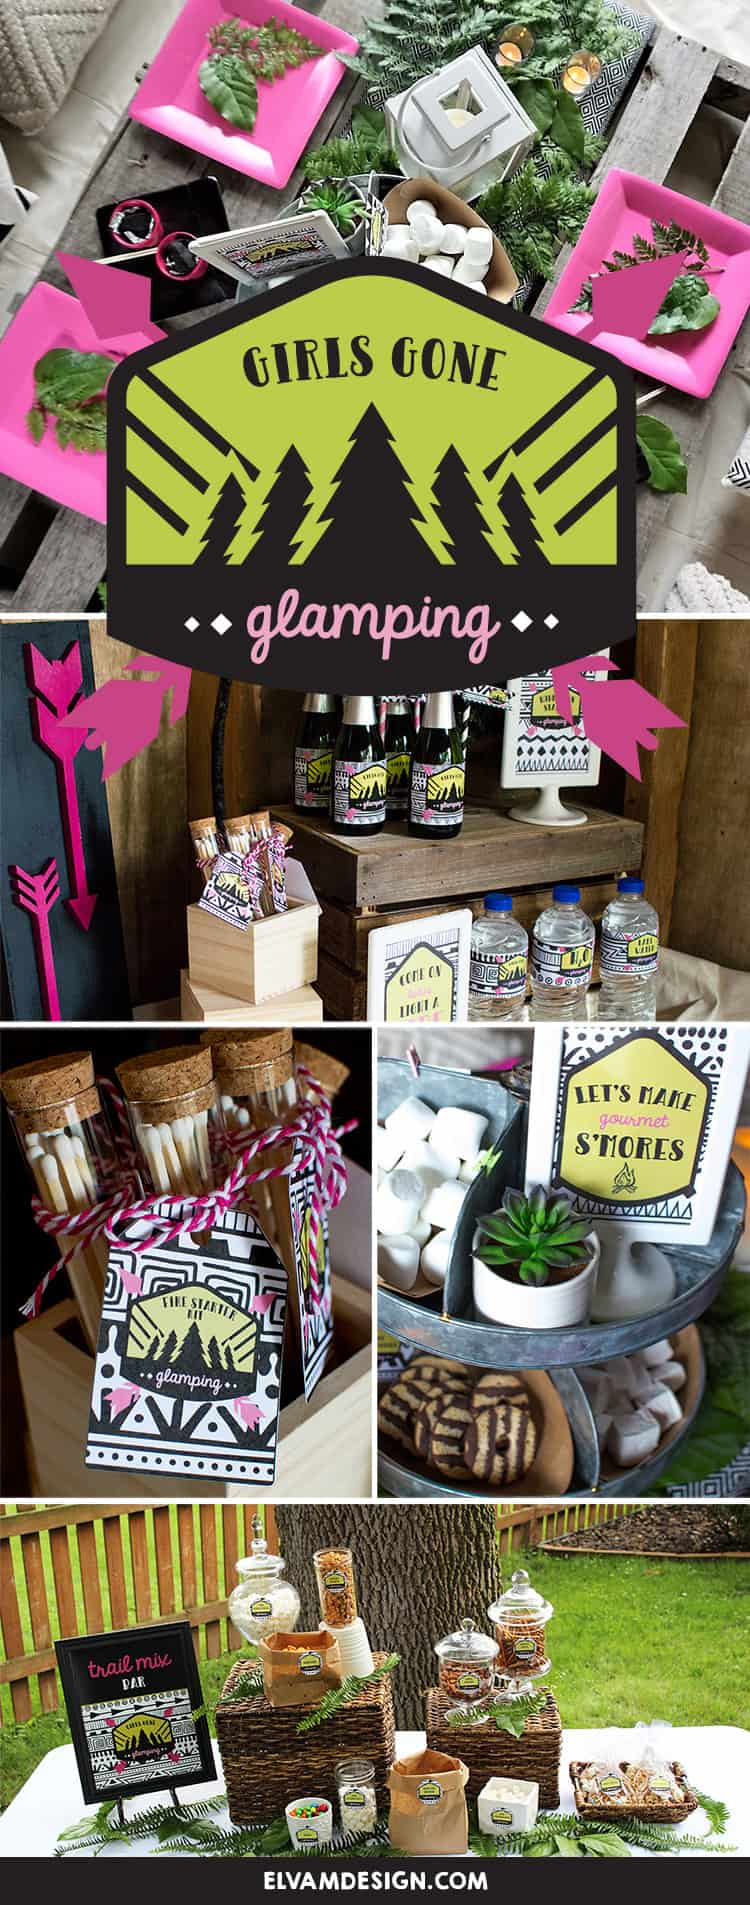 It's time to grab your ladies and head to the woods. Check out this Girls Gone Glamping Party from Elva M Design Studio for inspiration and ideas!